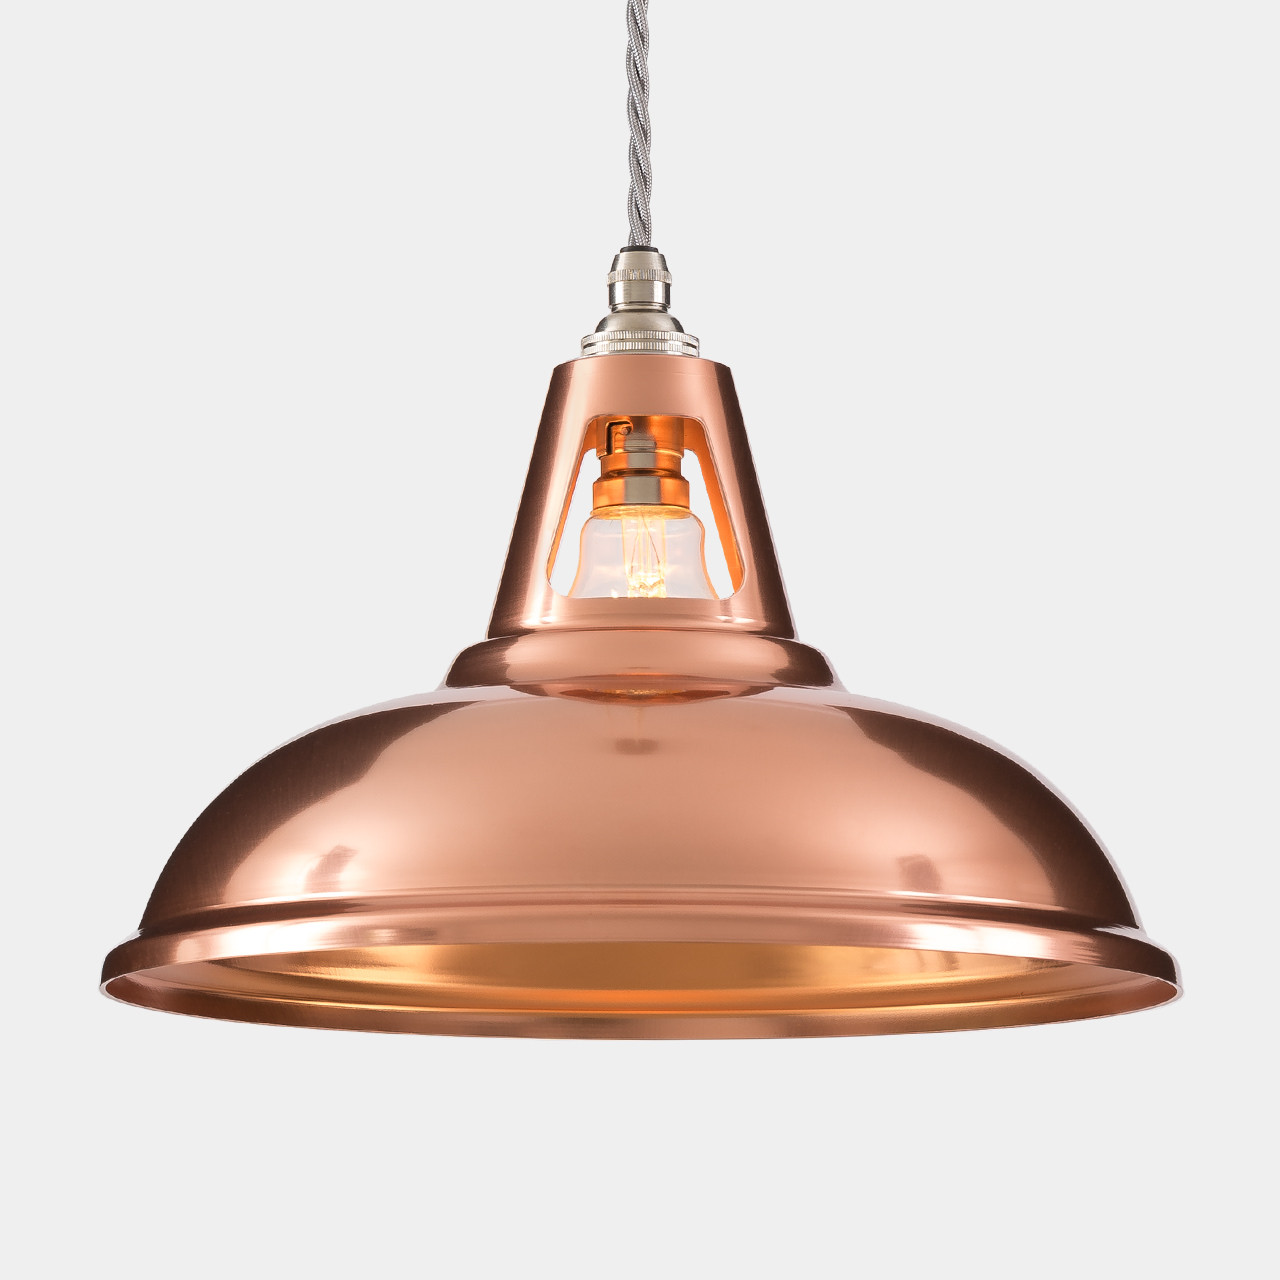 Copper Lighting Pendant Coolicon Industrial Copper Pendant Light Artifact Lighting